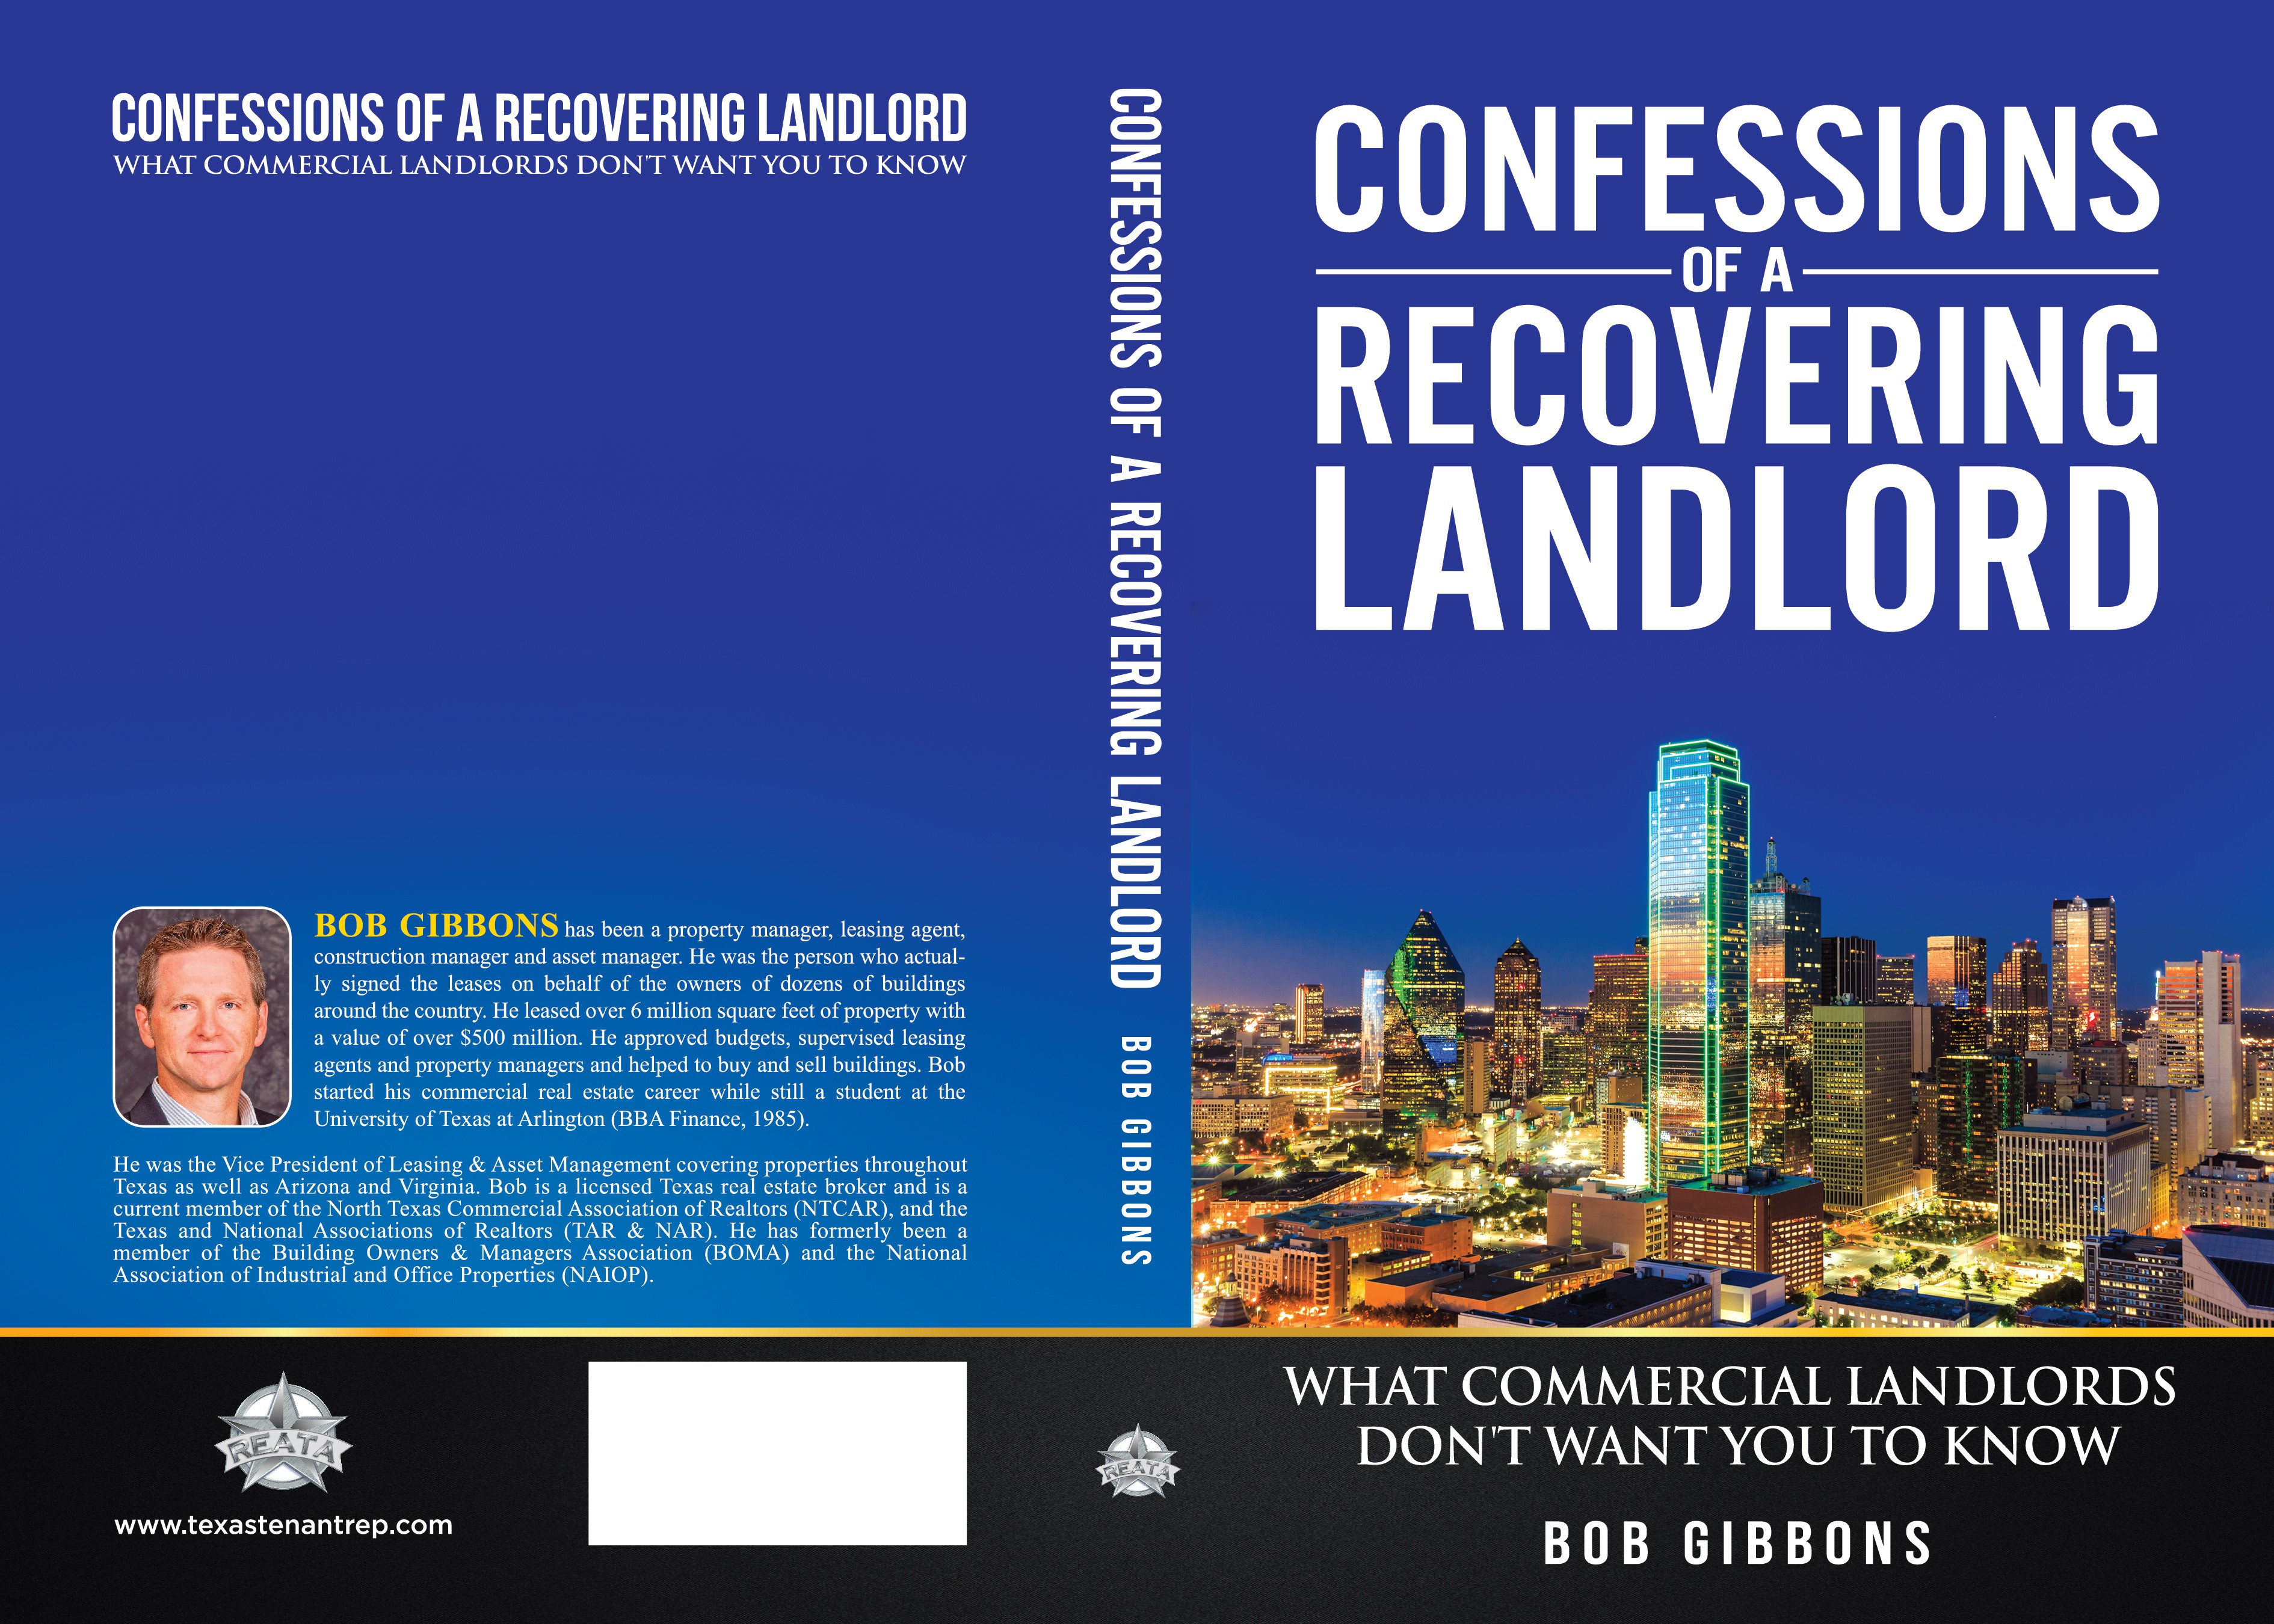 Create a business book cover - Confessions of a Recovering Landlord